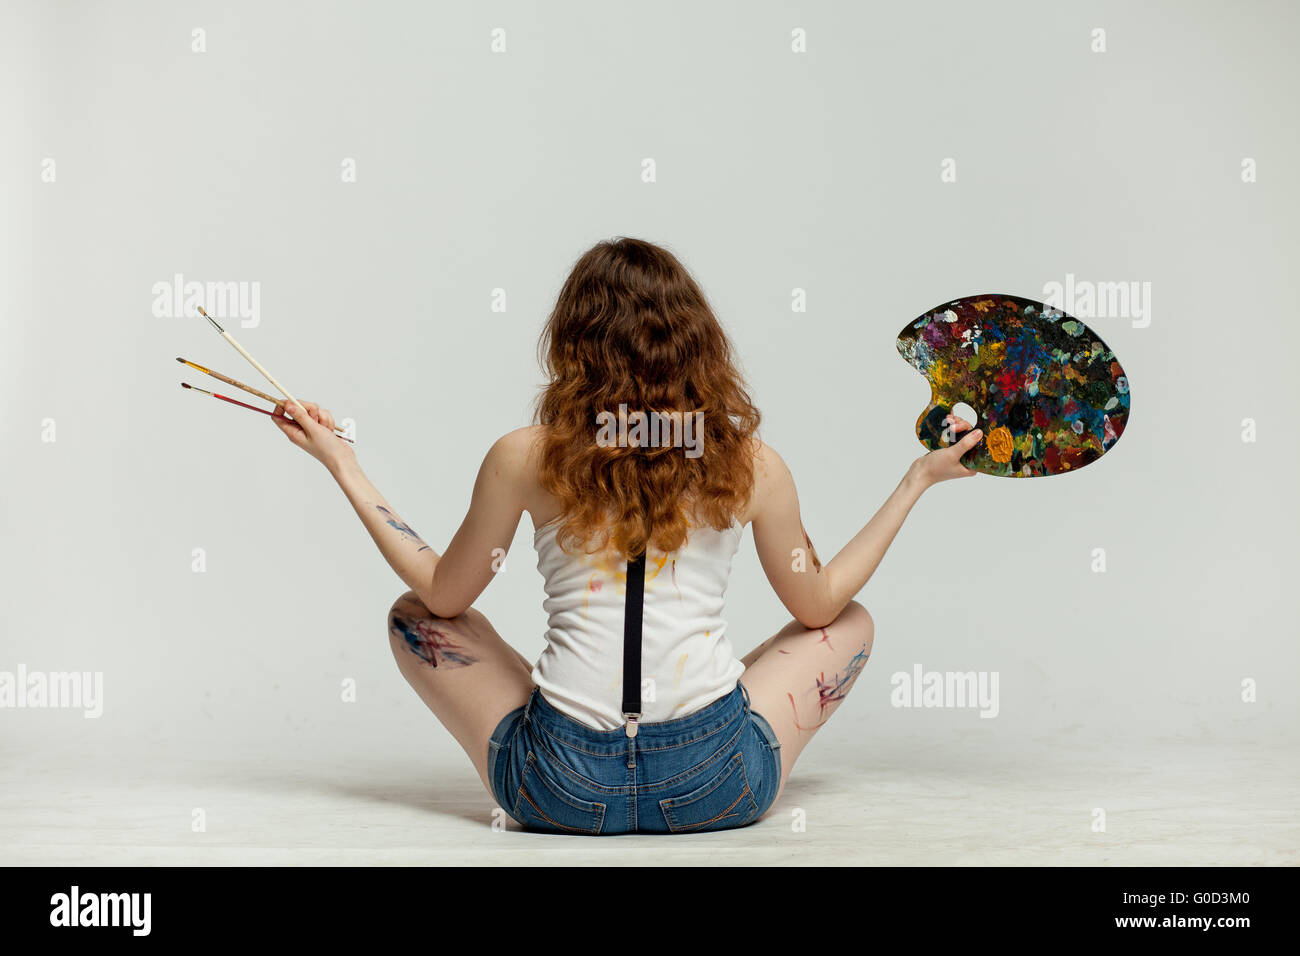 Girl artist back - Stock Image